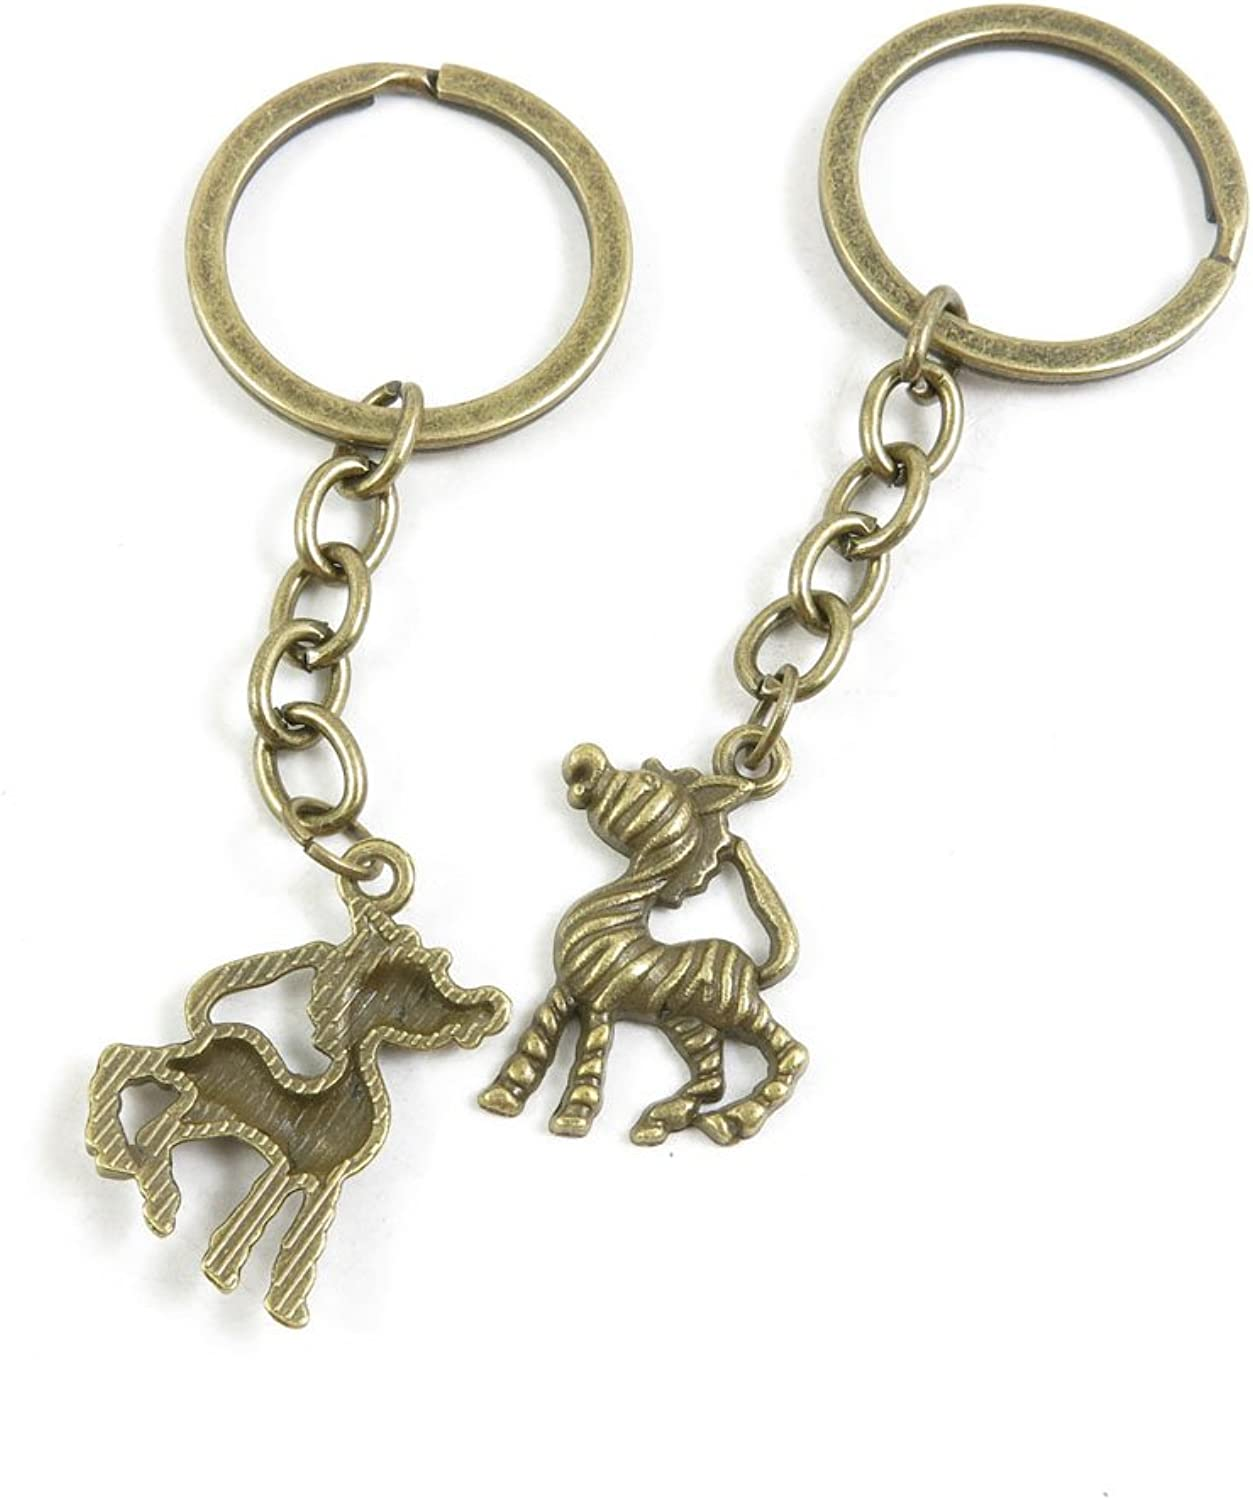 190 Pieces Fashion Jewelry Keyring Keychain Door Car Key Tag Ring Chain Supplier Supply Wholesale Bulk Lots O8ZK6 Zebra Horse